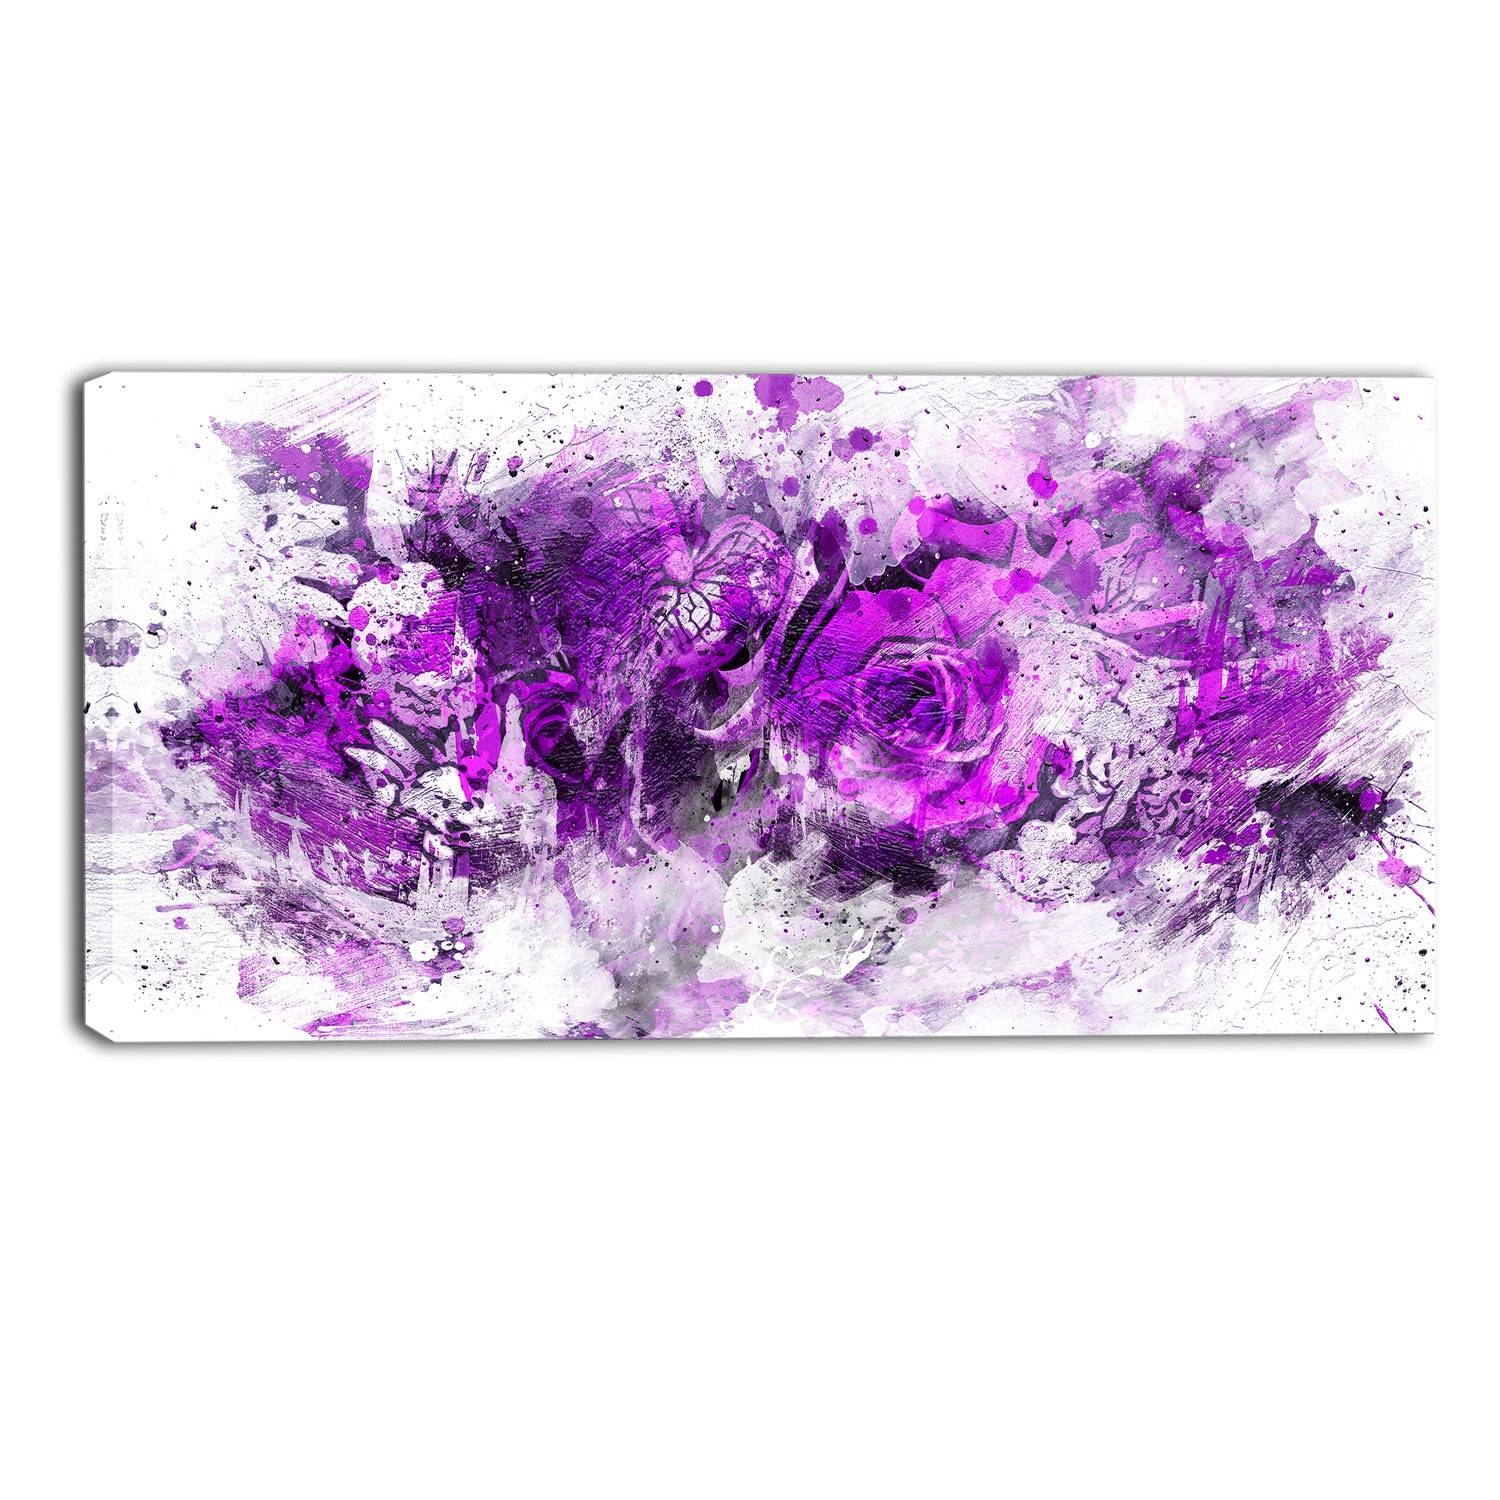 Purple Canvas Wall Art Make A Photo Gallery Purple Canvas Wall Art Within Newest Purple Wall Art Canvas (View 7 of 20)